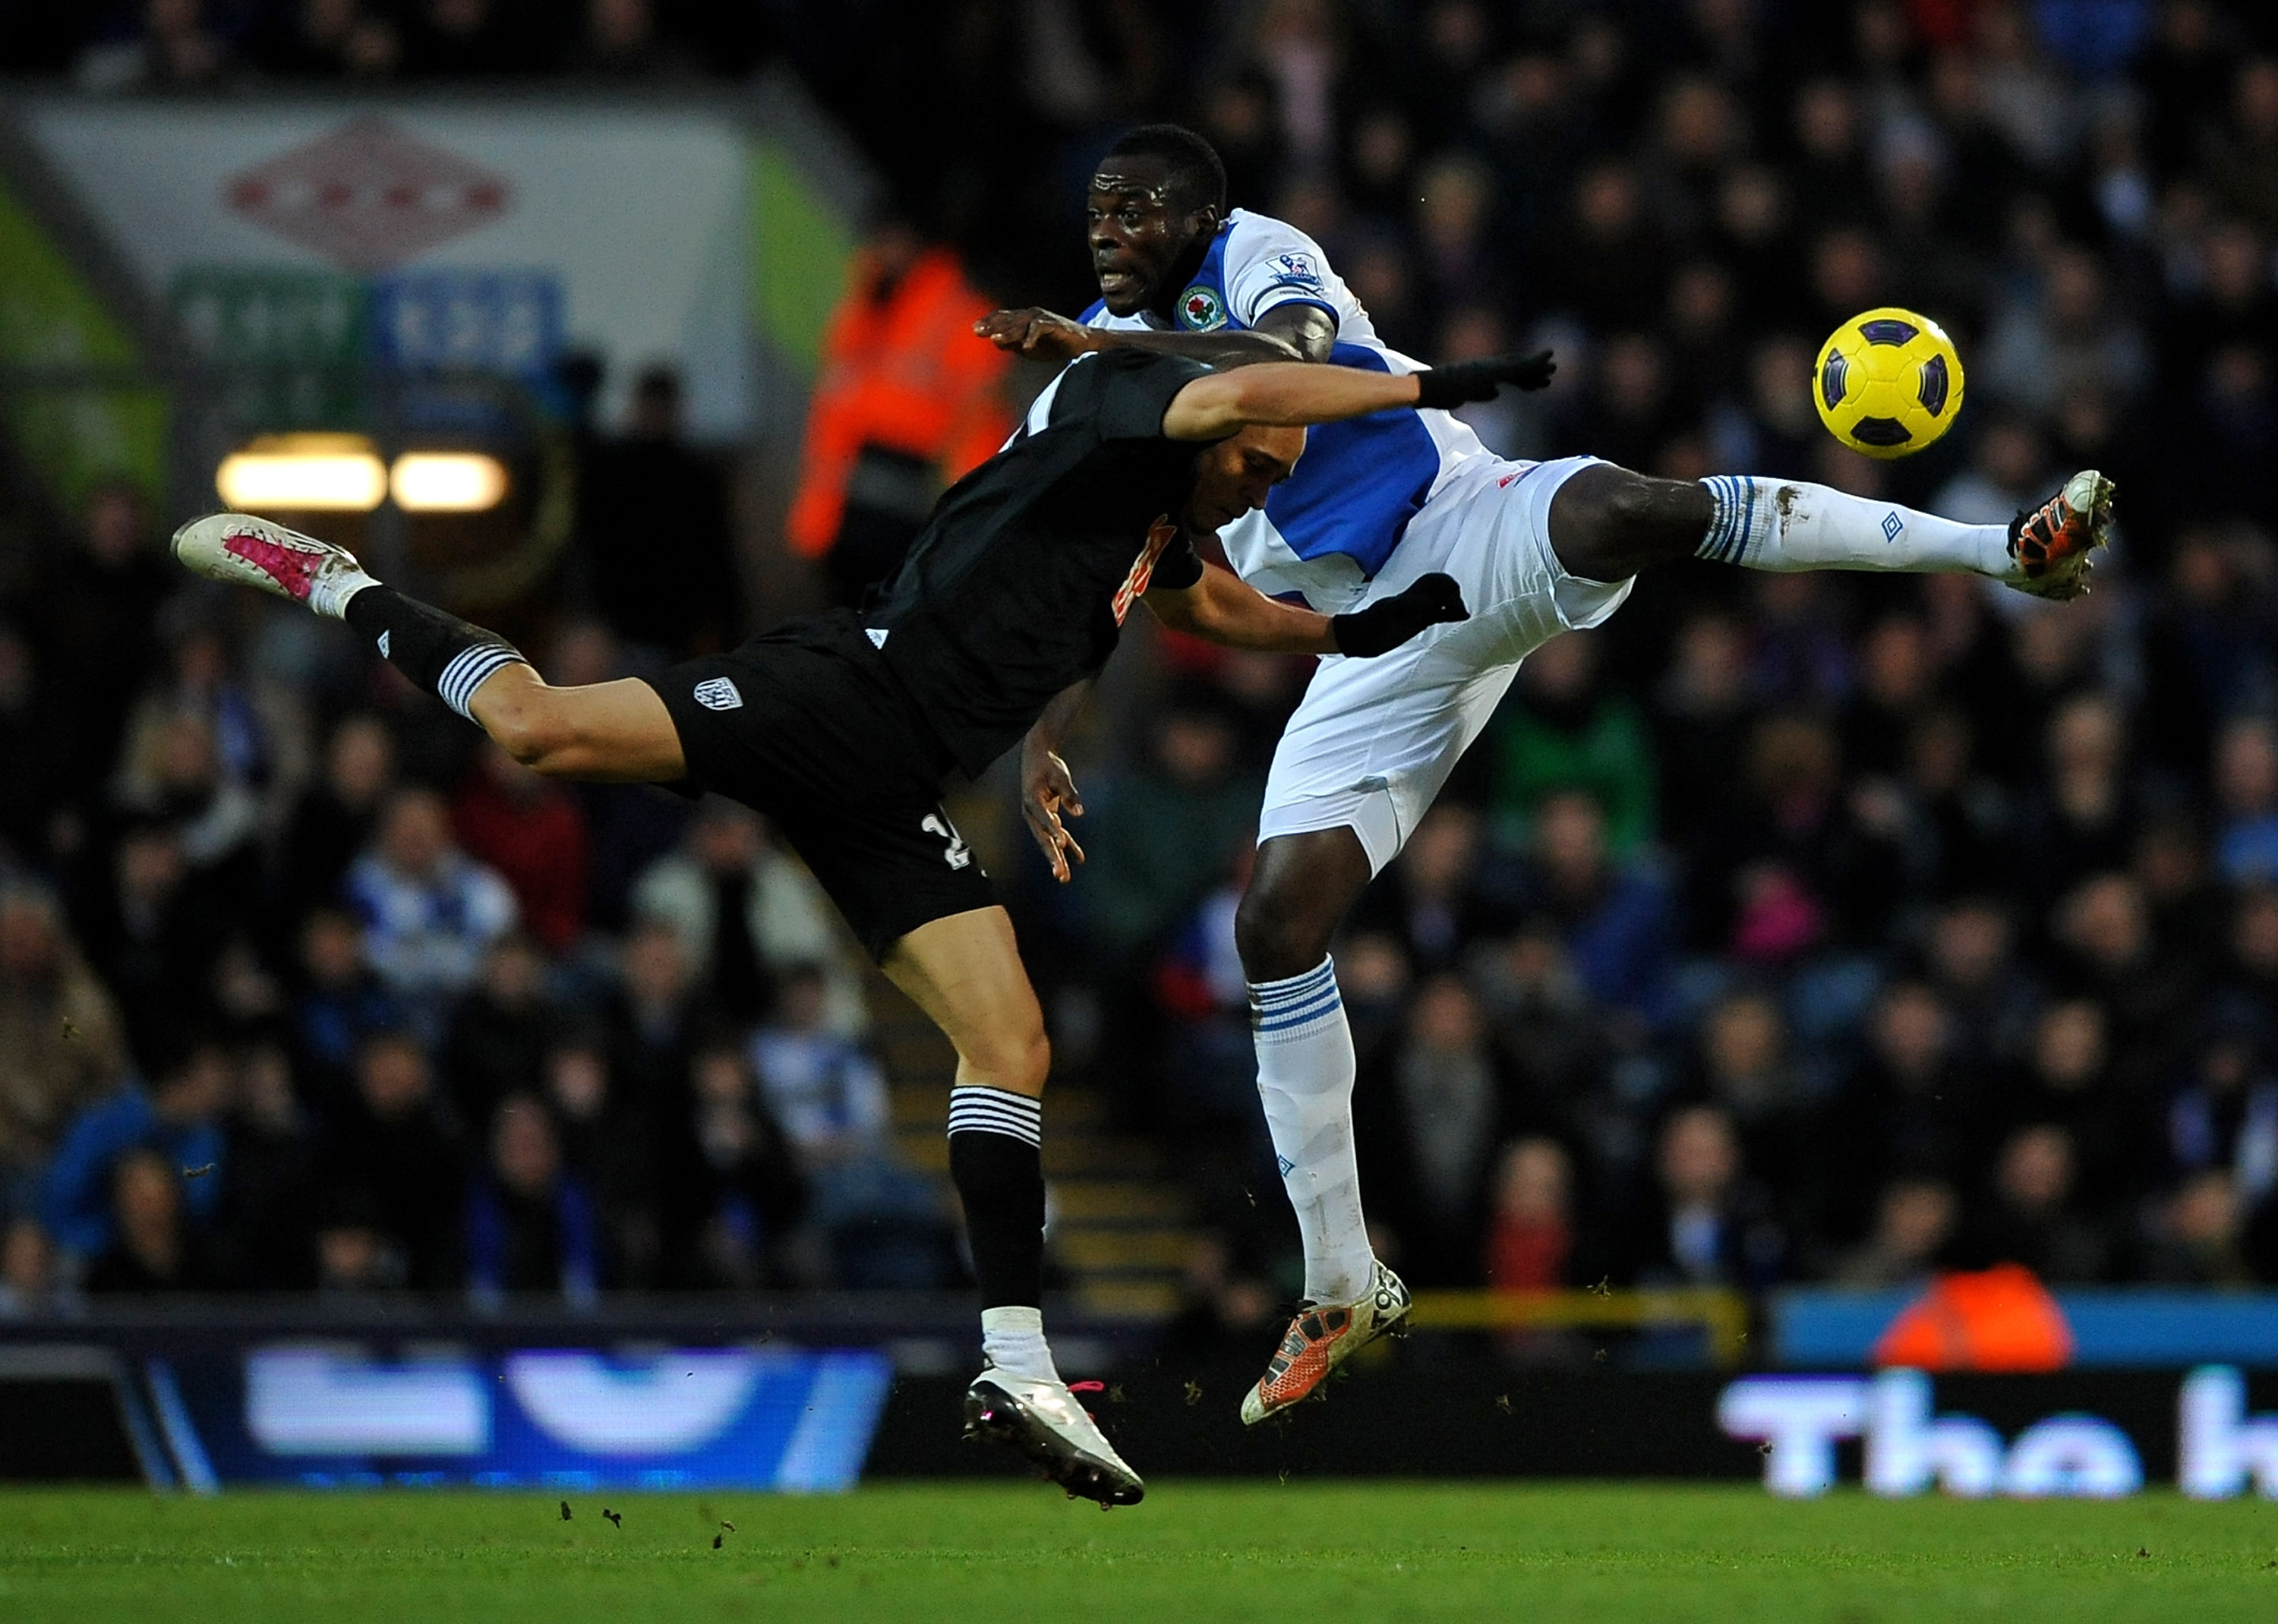 BLACKBURN, ENGLAND - JANUARY 23:  Chris Samba of Blackburn Rovers tangles with Peter Odemwingie of West Bromwich Albion during the Barclays Premier League match between Blackburn Rovers and West Bromwich Albion at Ewood Park on January 23, 2011 in Blackbu